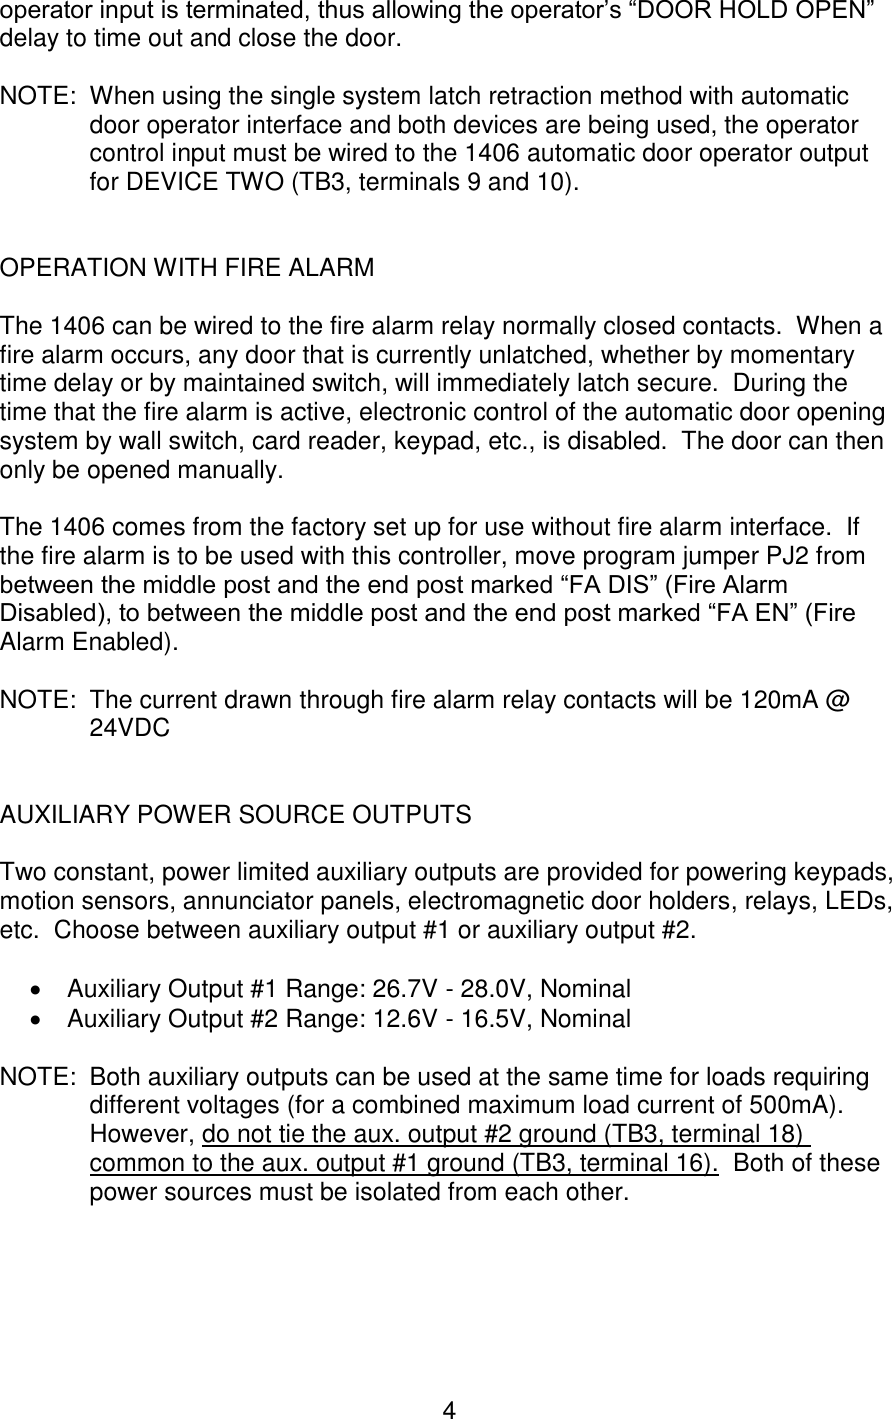 Acsi Xxxxxxxxxxx Electric Latch Retraction Controller 1406 04 Ao Ii Relay Diagrams Latched Output Momentary To Constant Page 4 Of 8